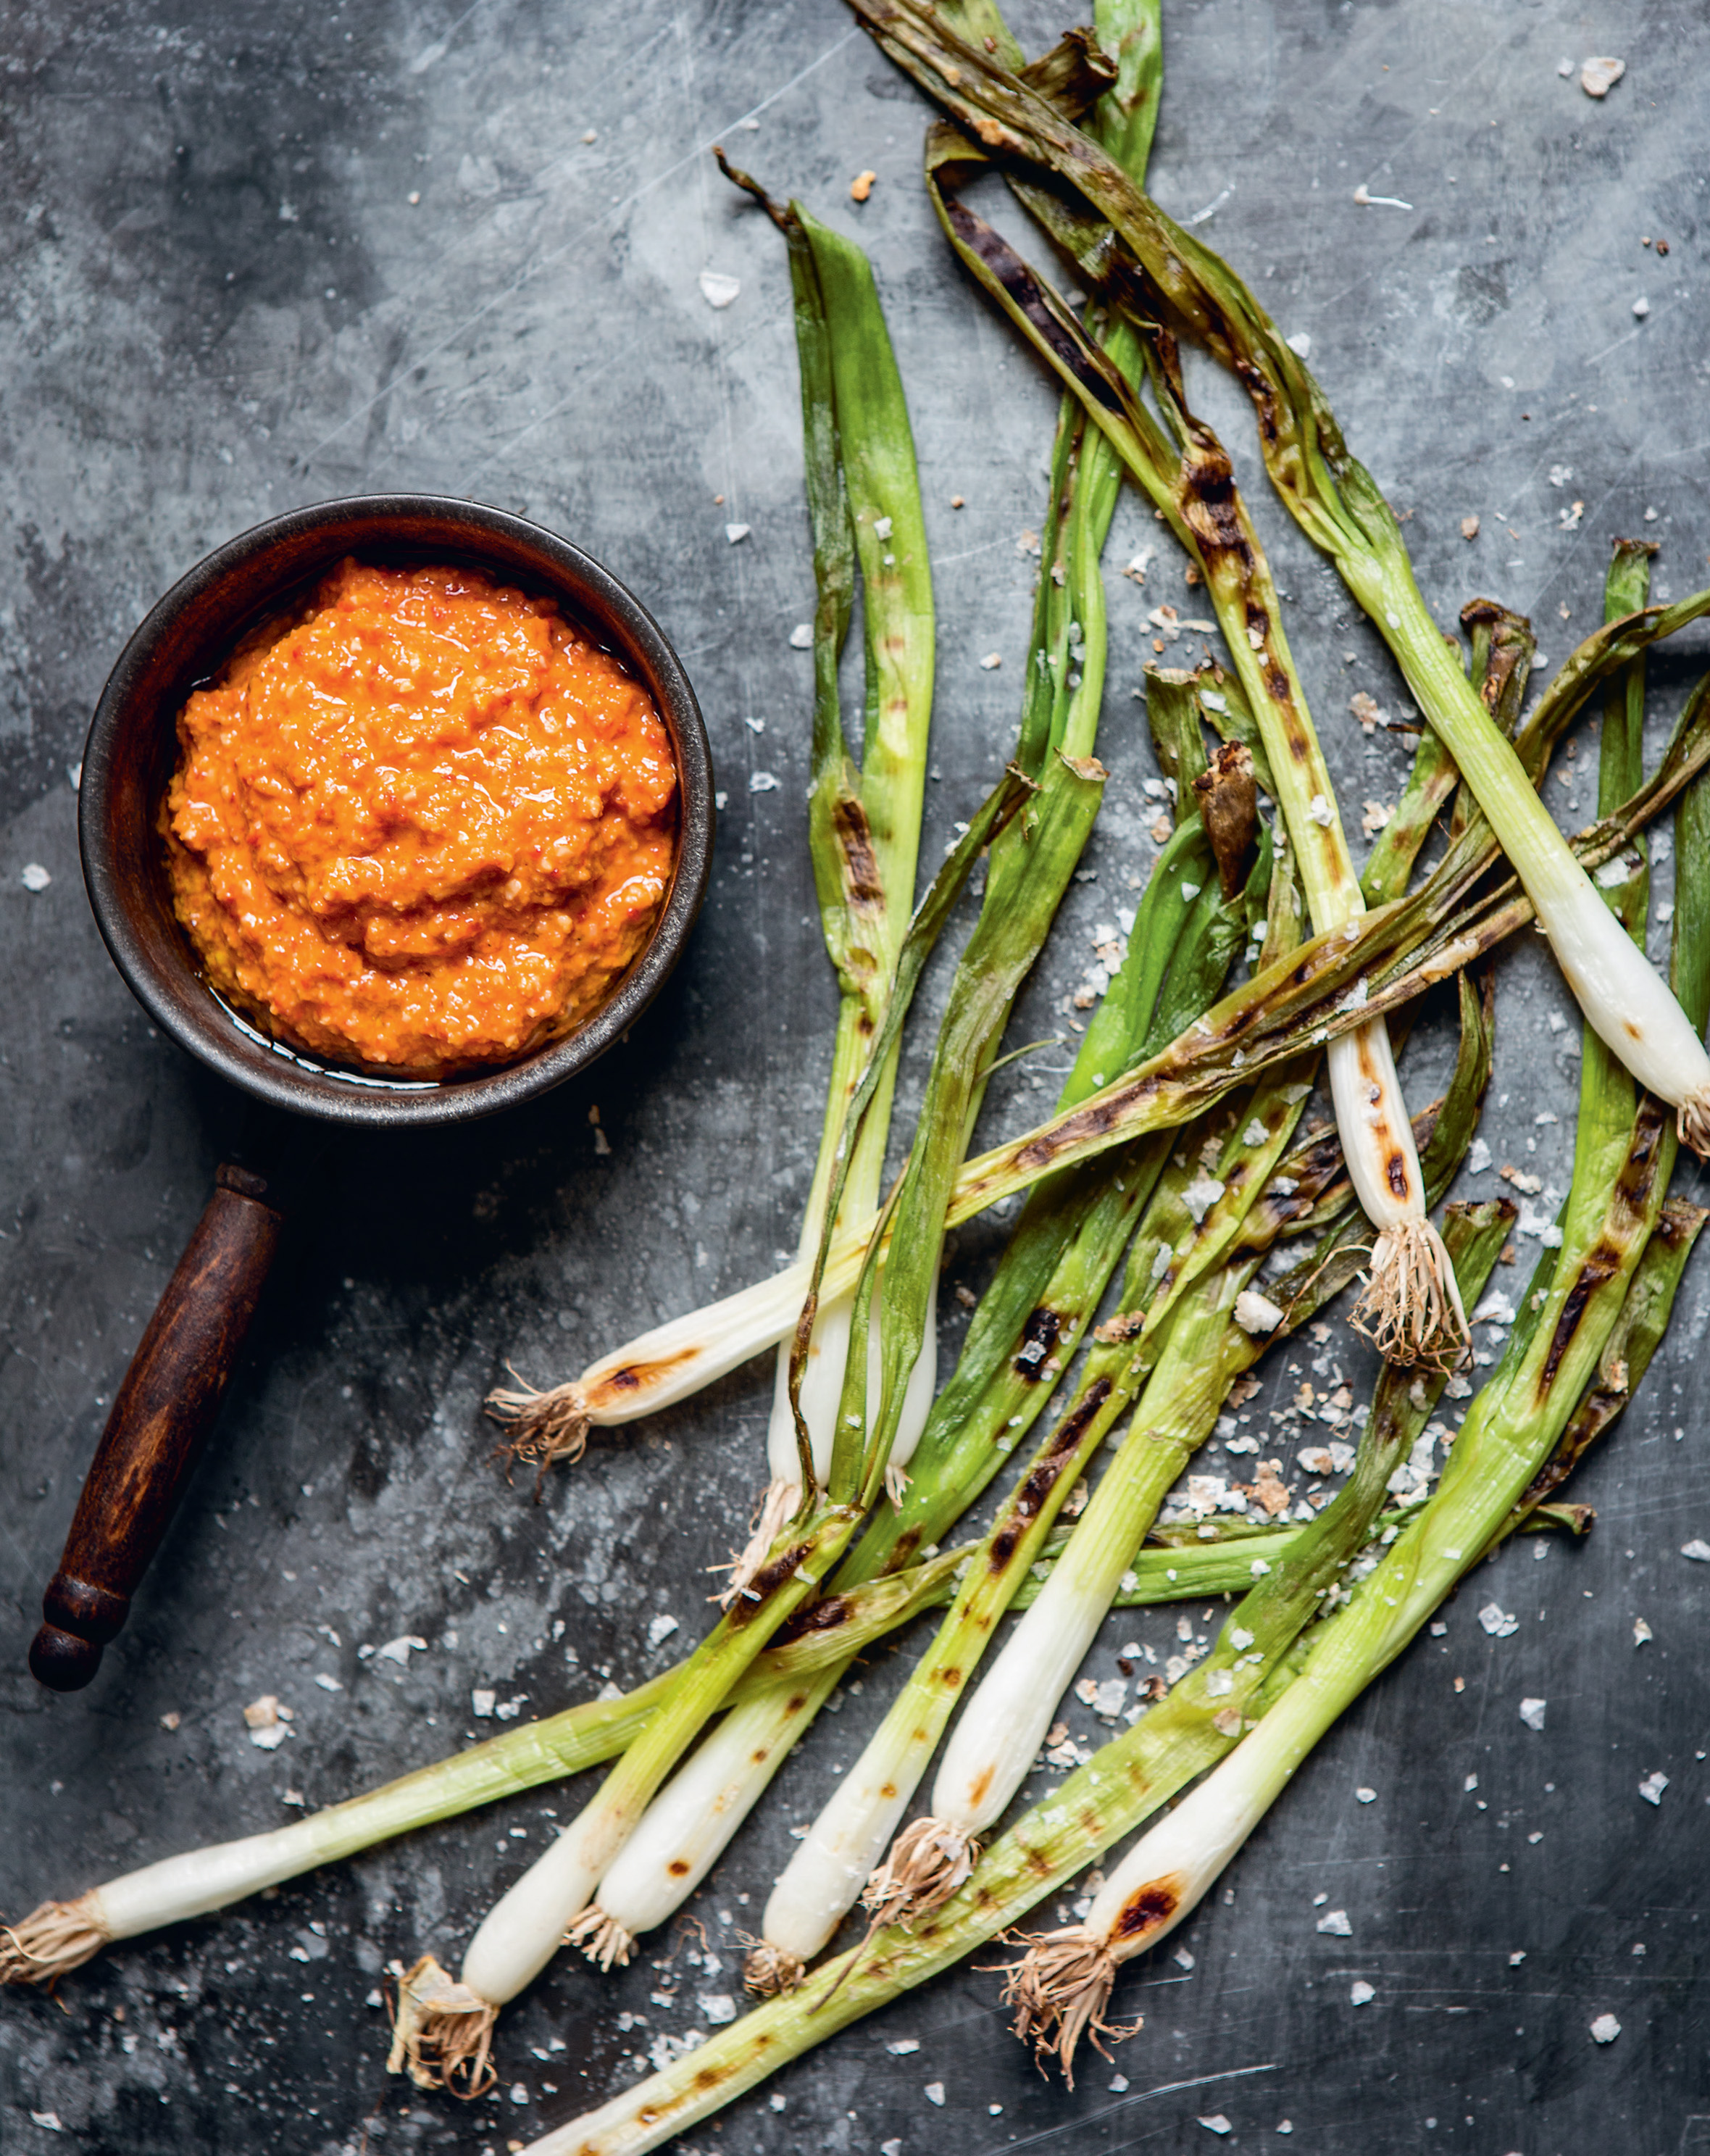 Romesco sauce with grilled spring onions